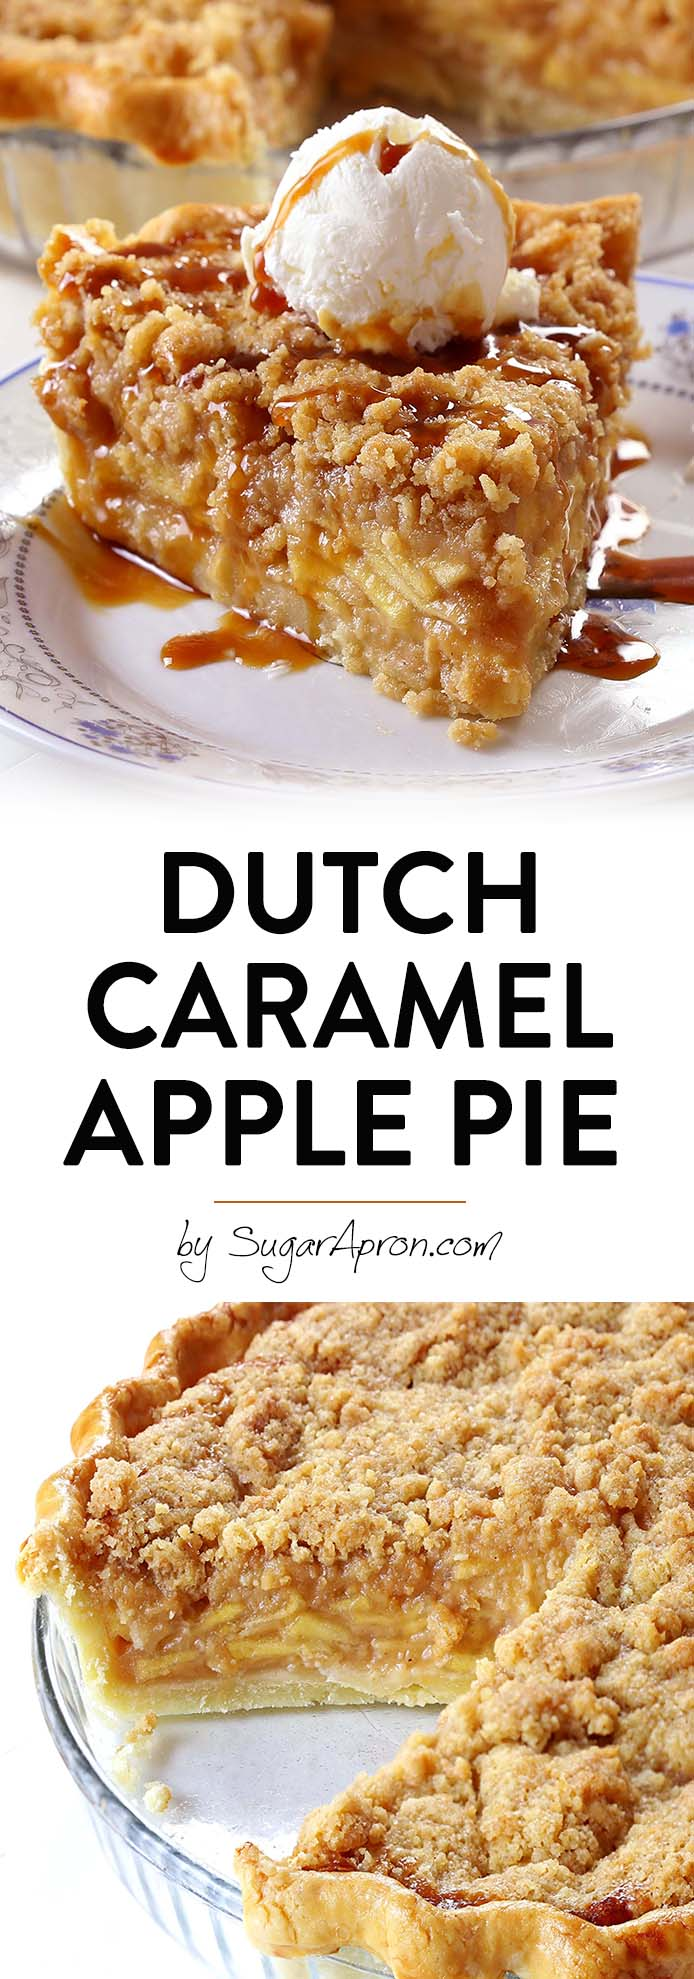 Sometimes you want a dessert that's ALWAYS good, a slice of my homemade Dutch Caramel Apple Pie will make you feel better.